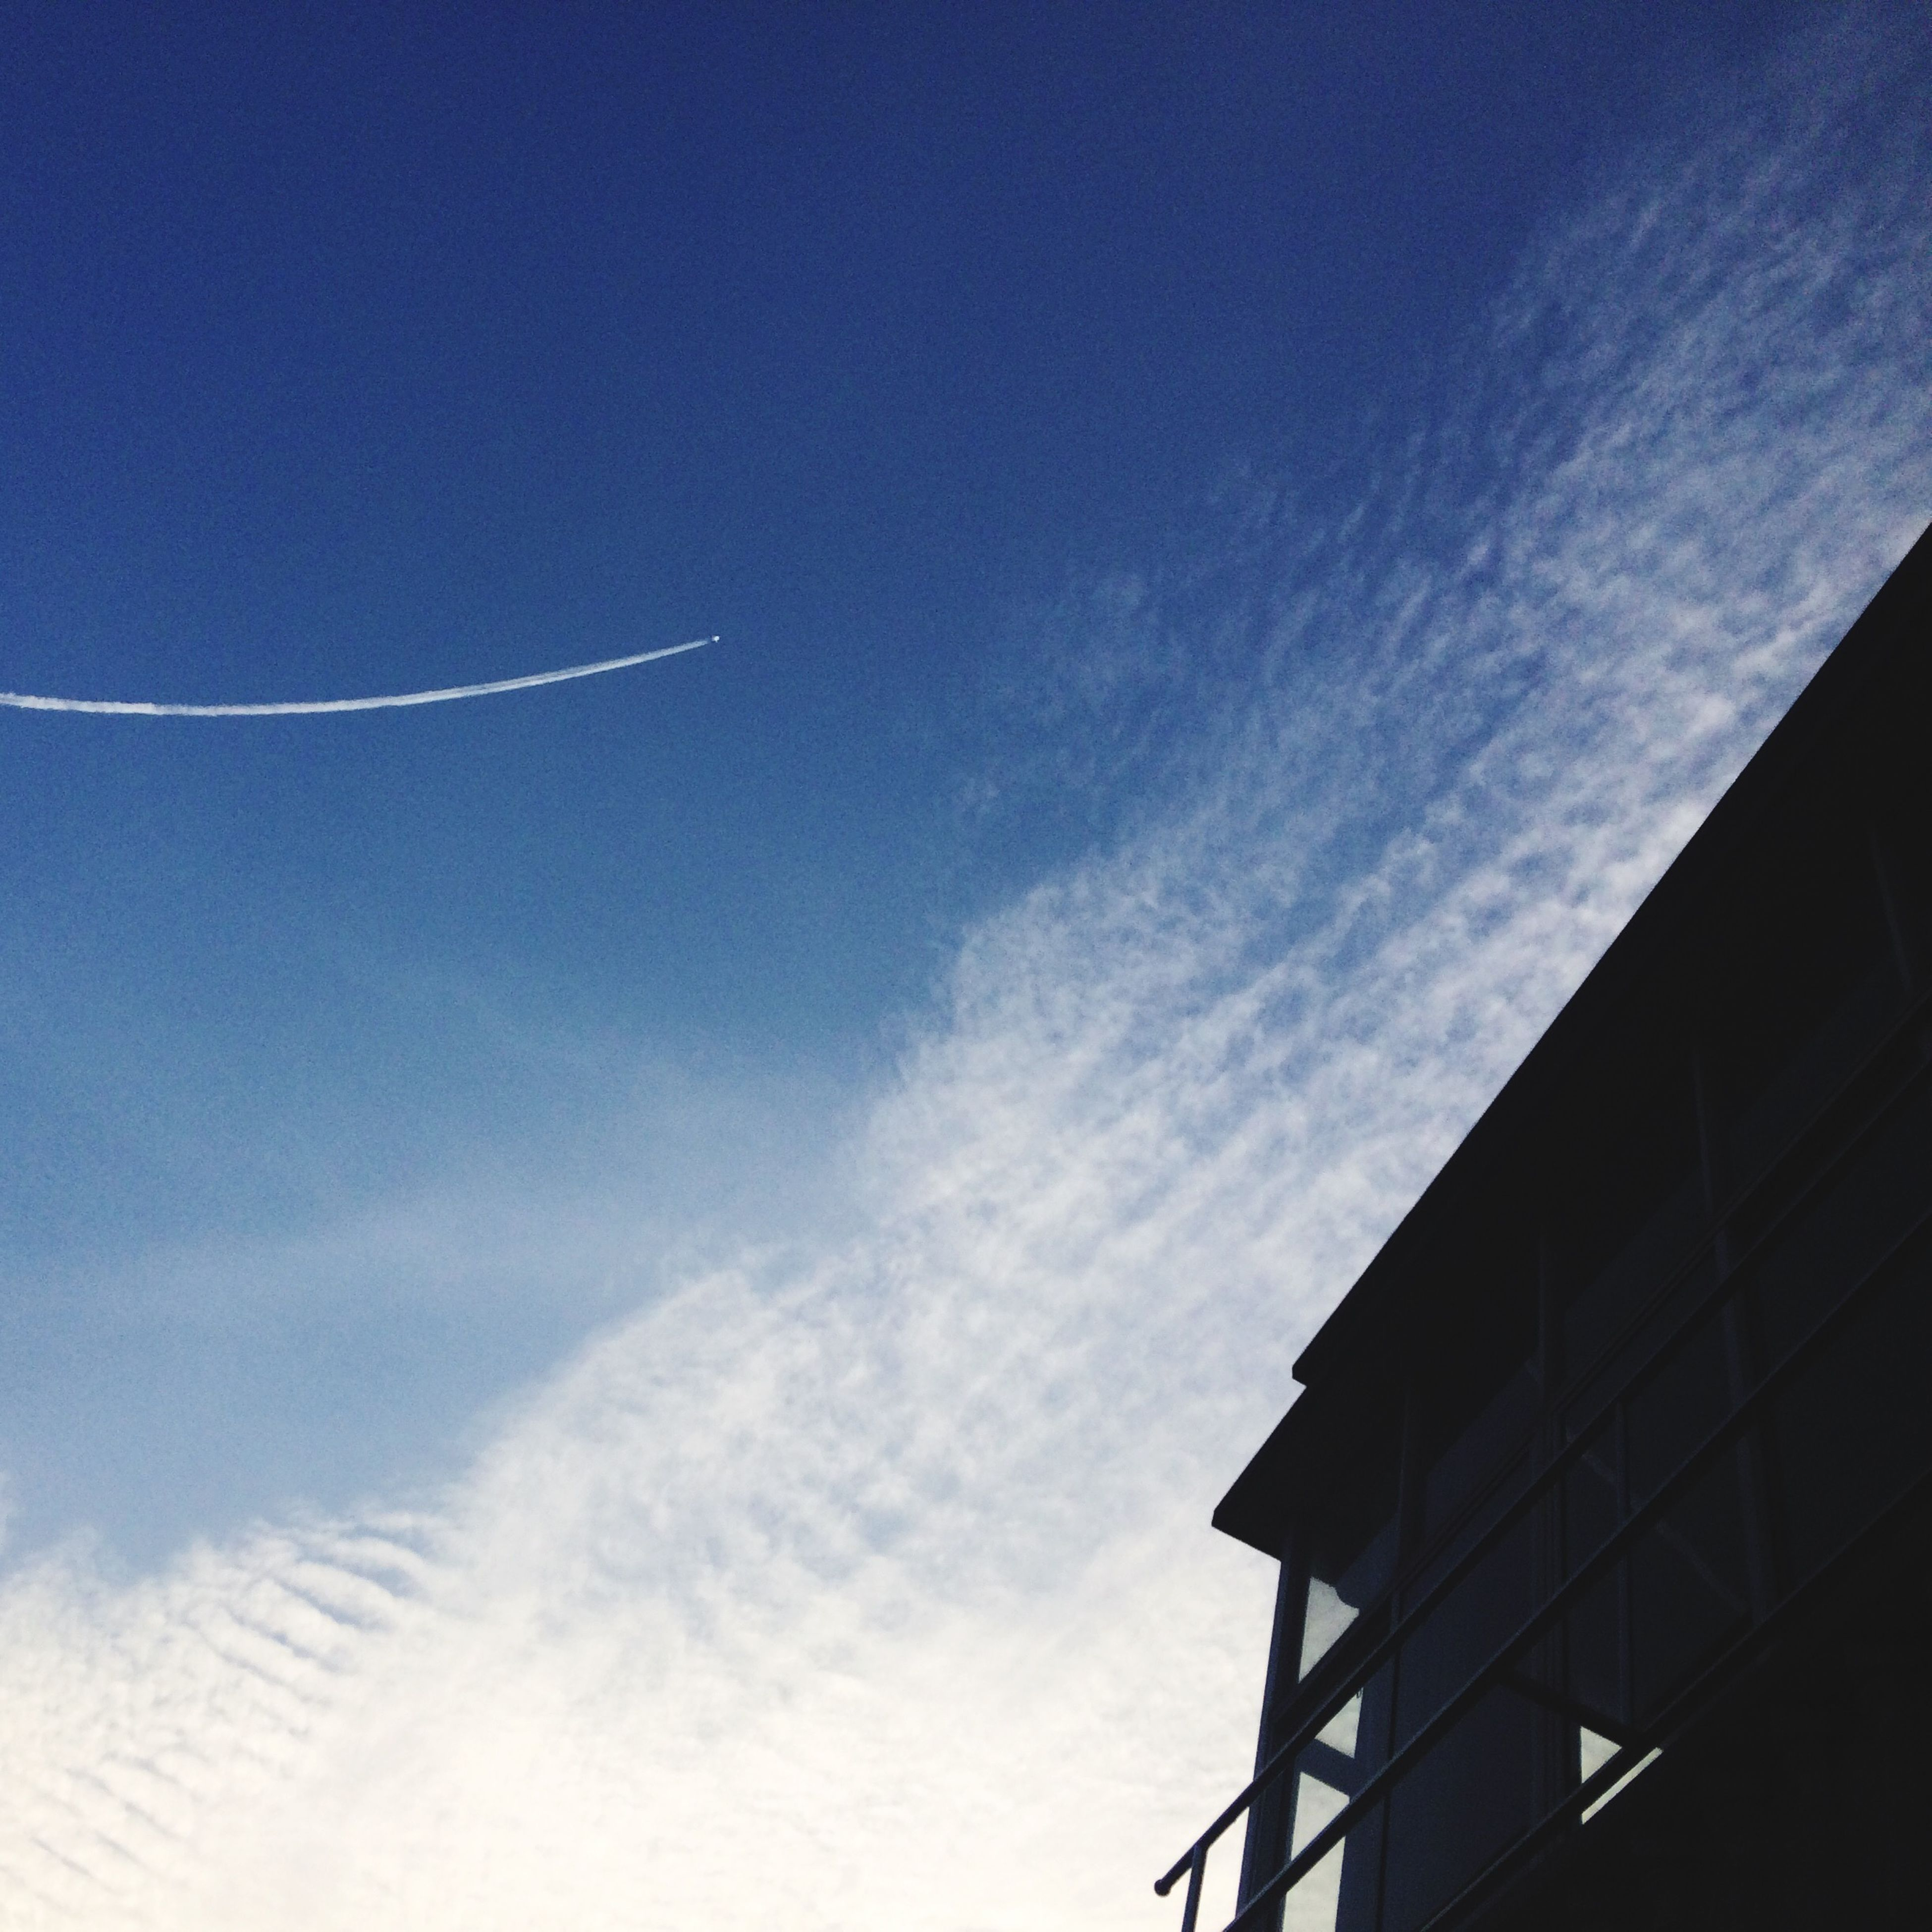 low angle view, building exterior, architecture, built structure, sky, blue, cloud - sky, vapor trail, outdoors, cloud, day, no people, nature, building, city, sunlight, window, high section, beauty in nature, scenics